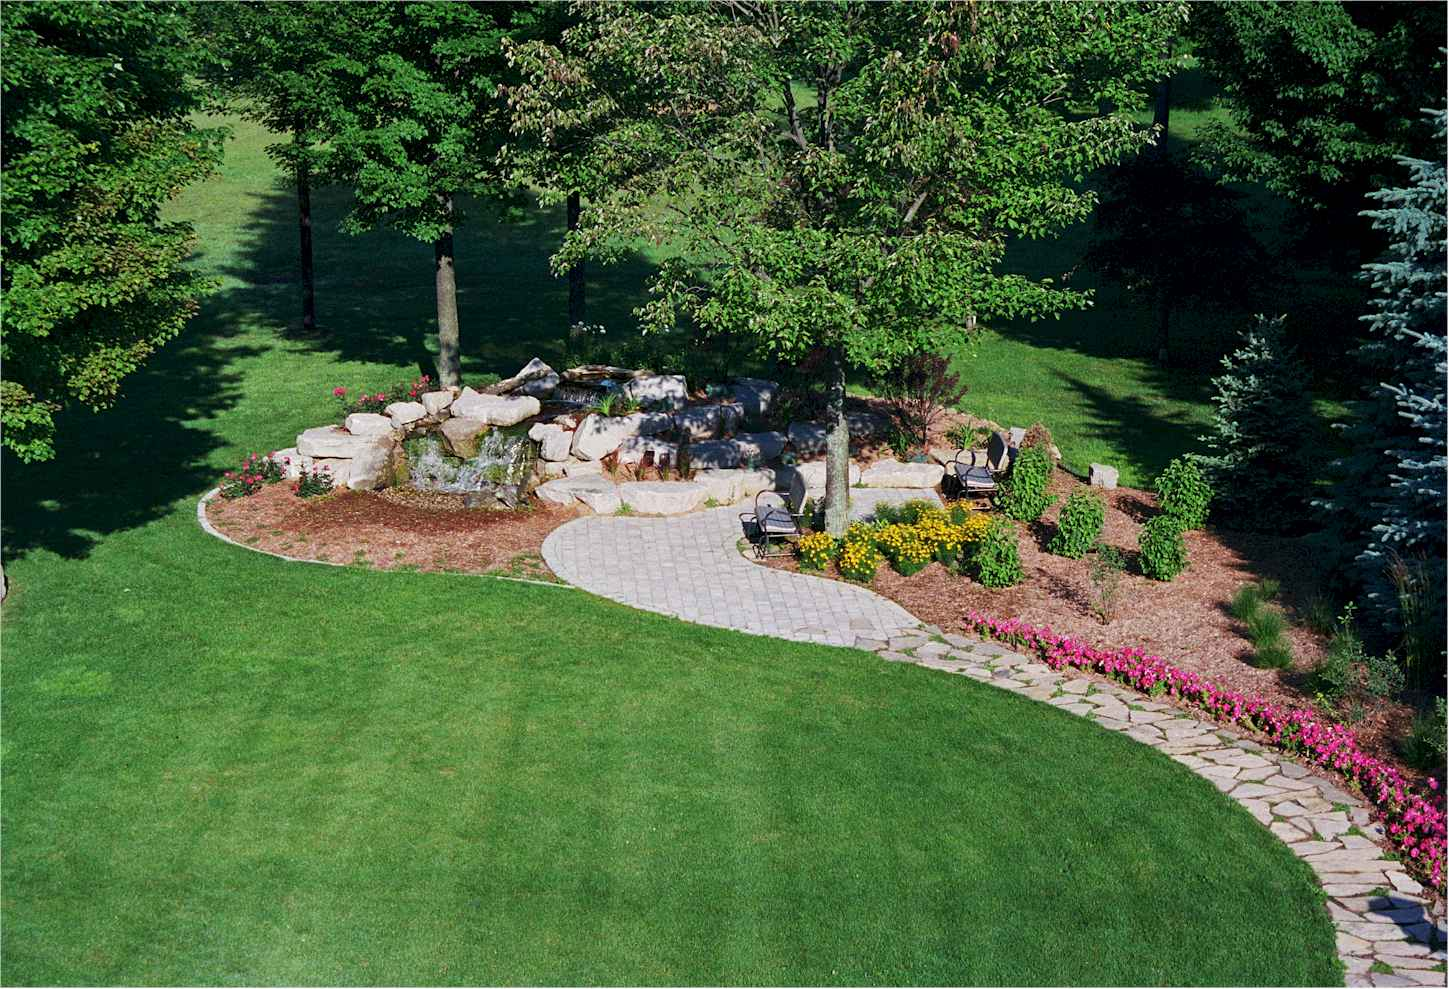 5 landscaping ideas to wow the neighbors for Lawn and garden landscaping ideas